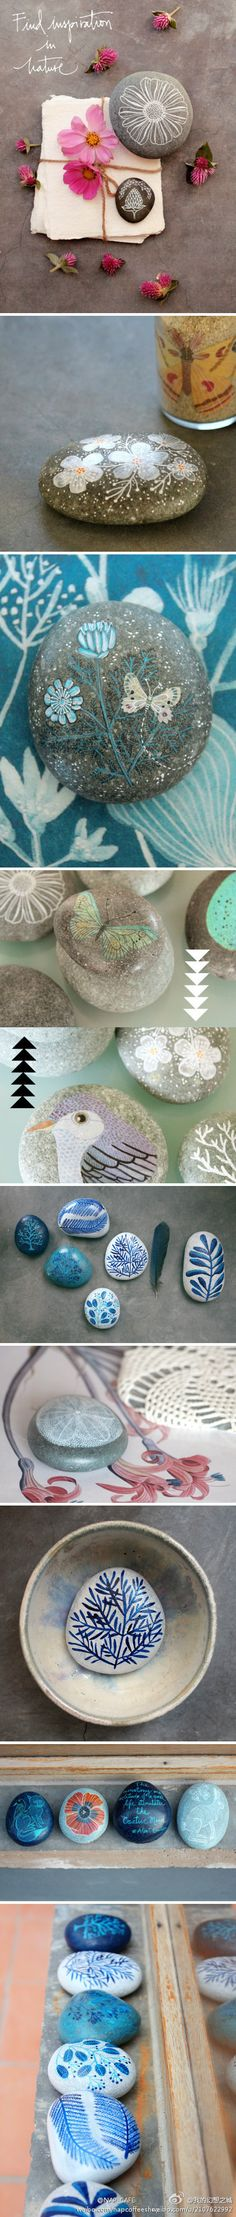 hand painting stones #crafts. These are so pretty. I have absolutely no excuse for not making these.